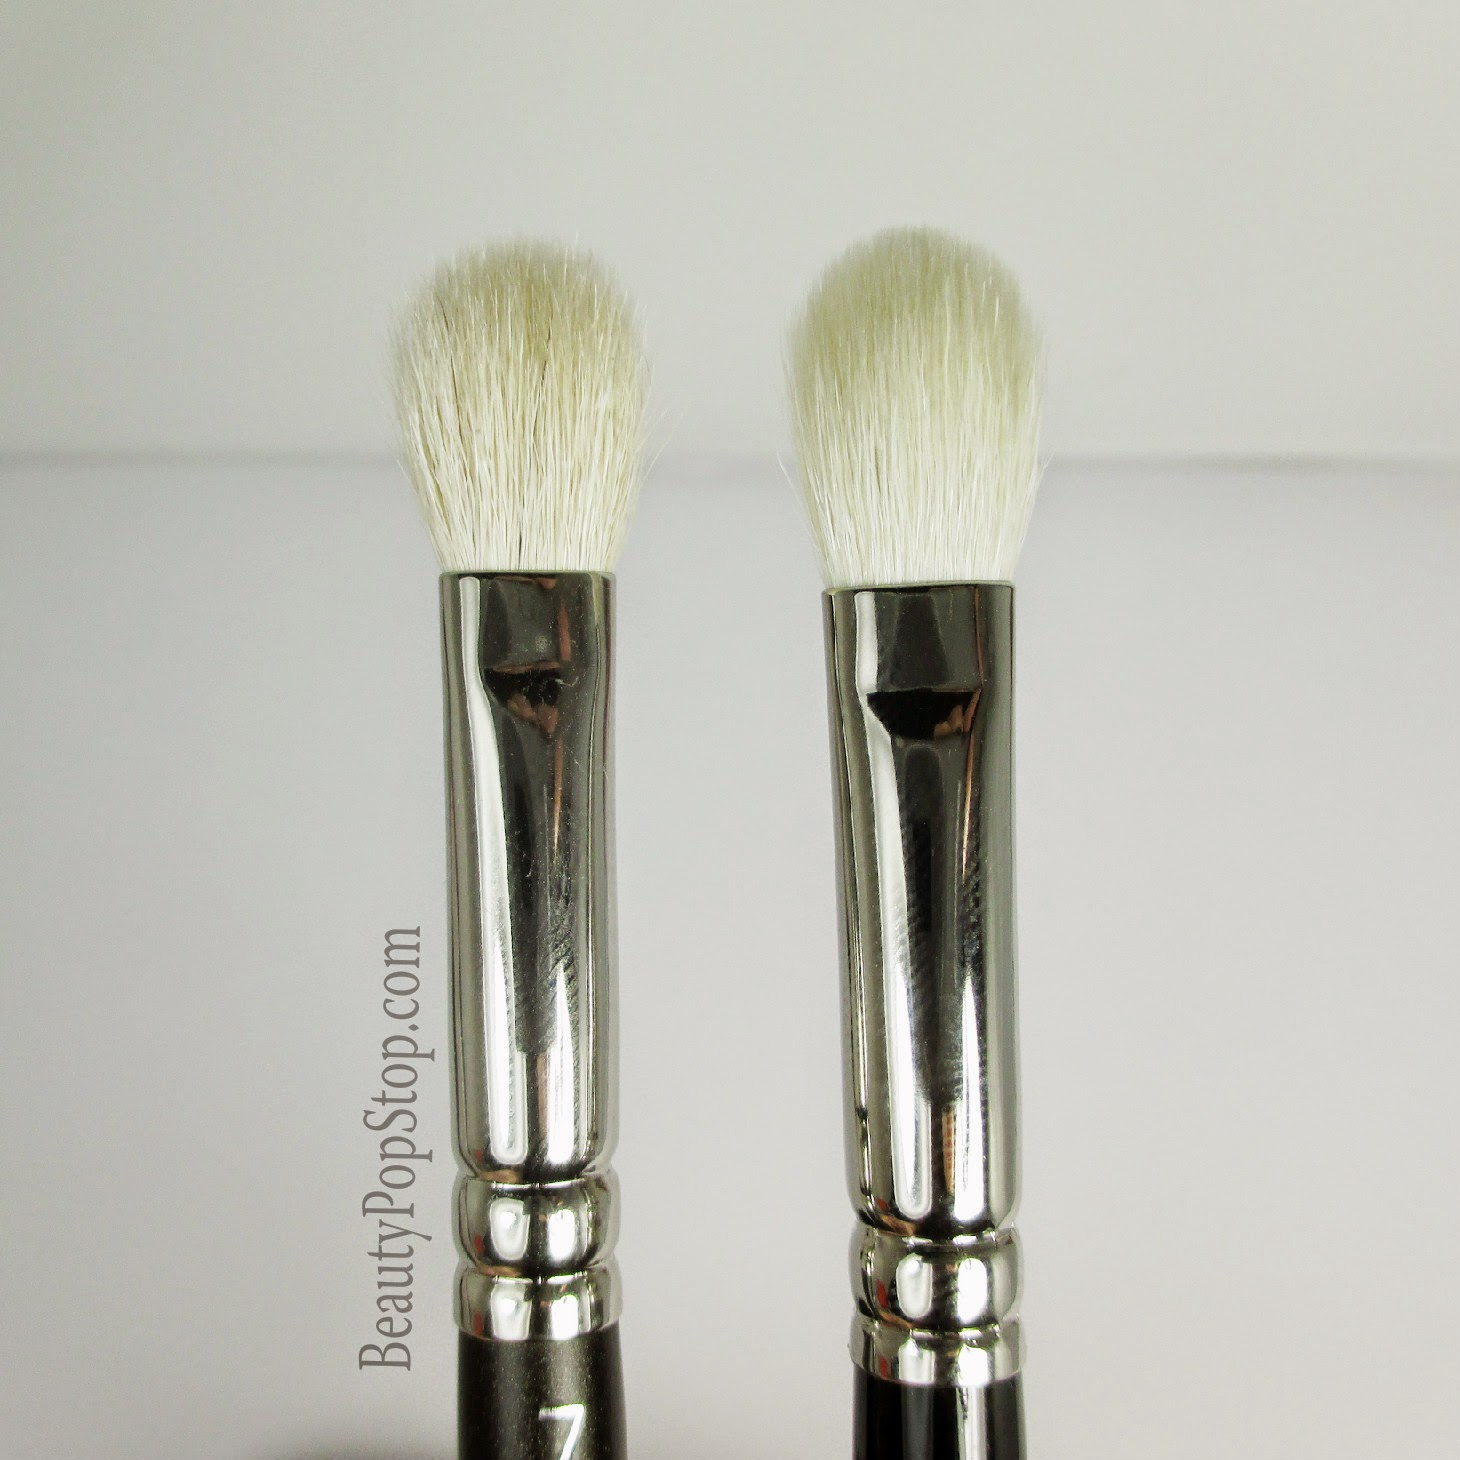 hakuhodo j5523 vs mac 217 comparison japanese makeup brush maccosmetics